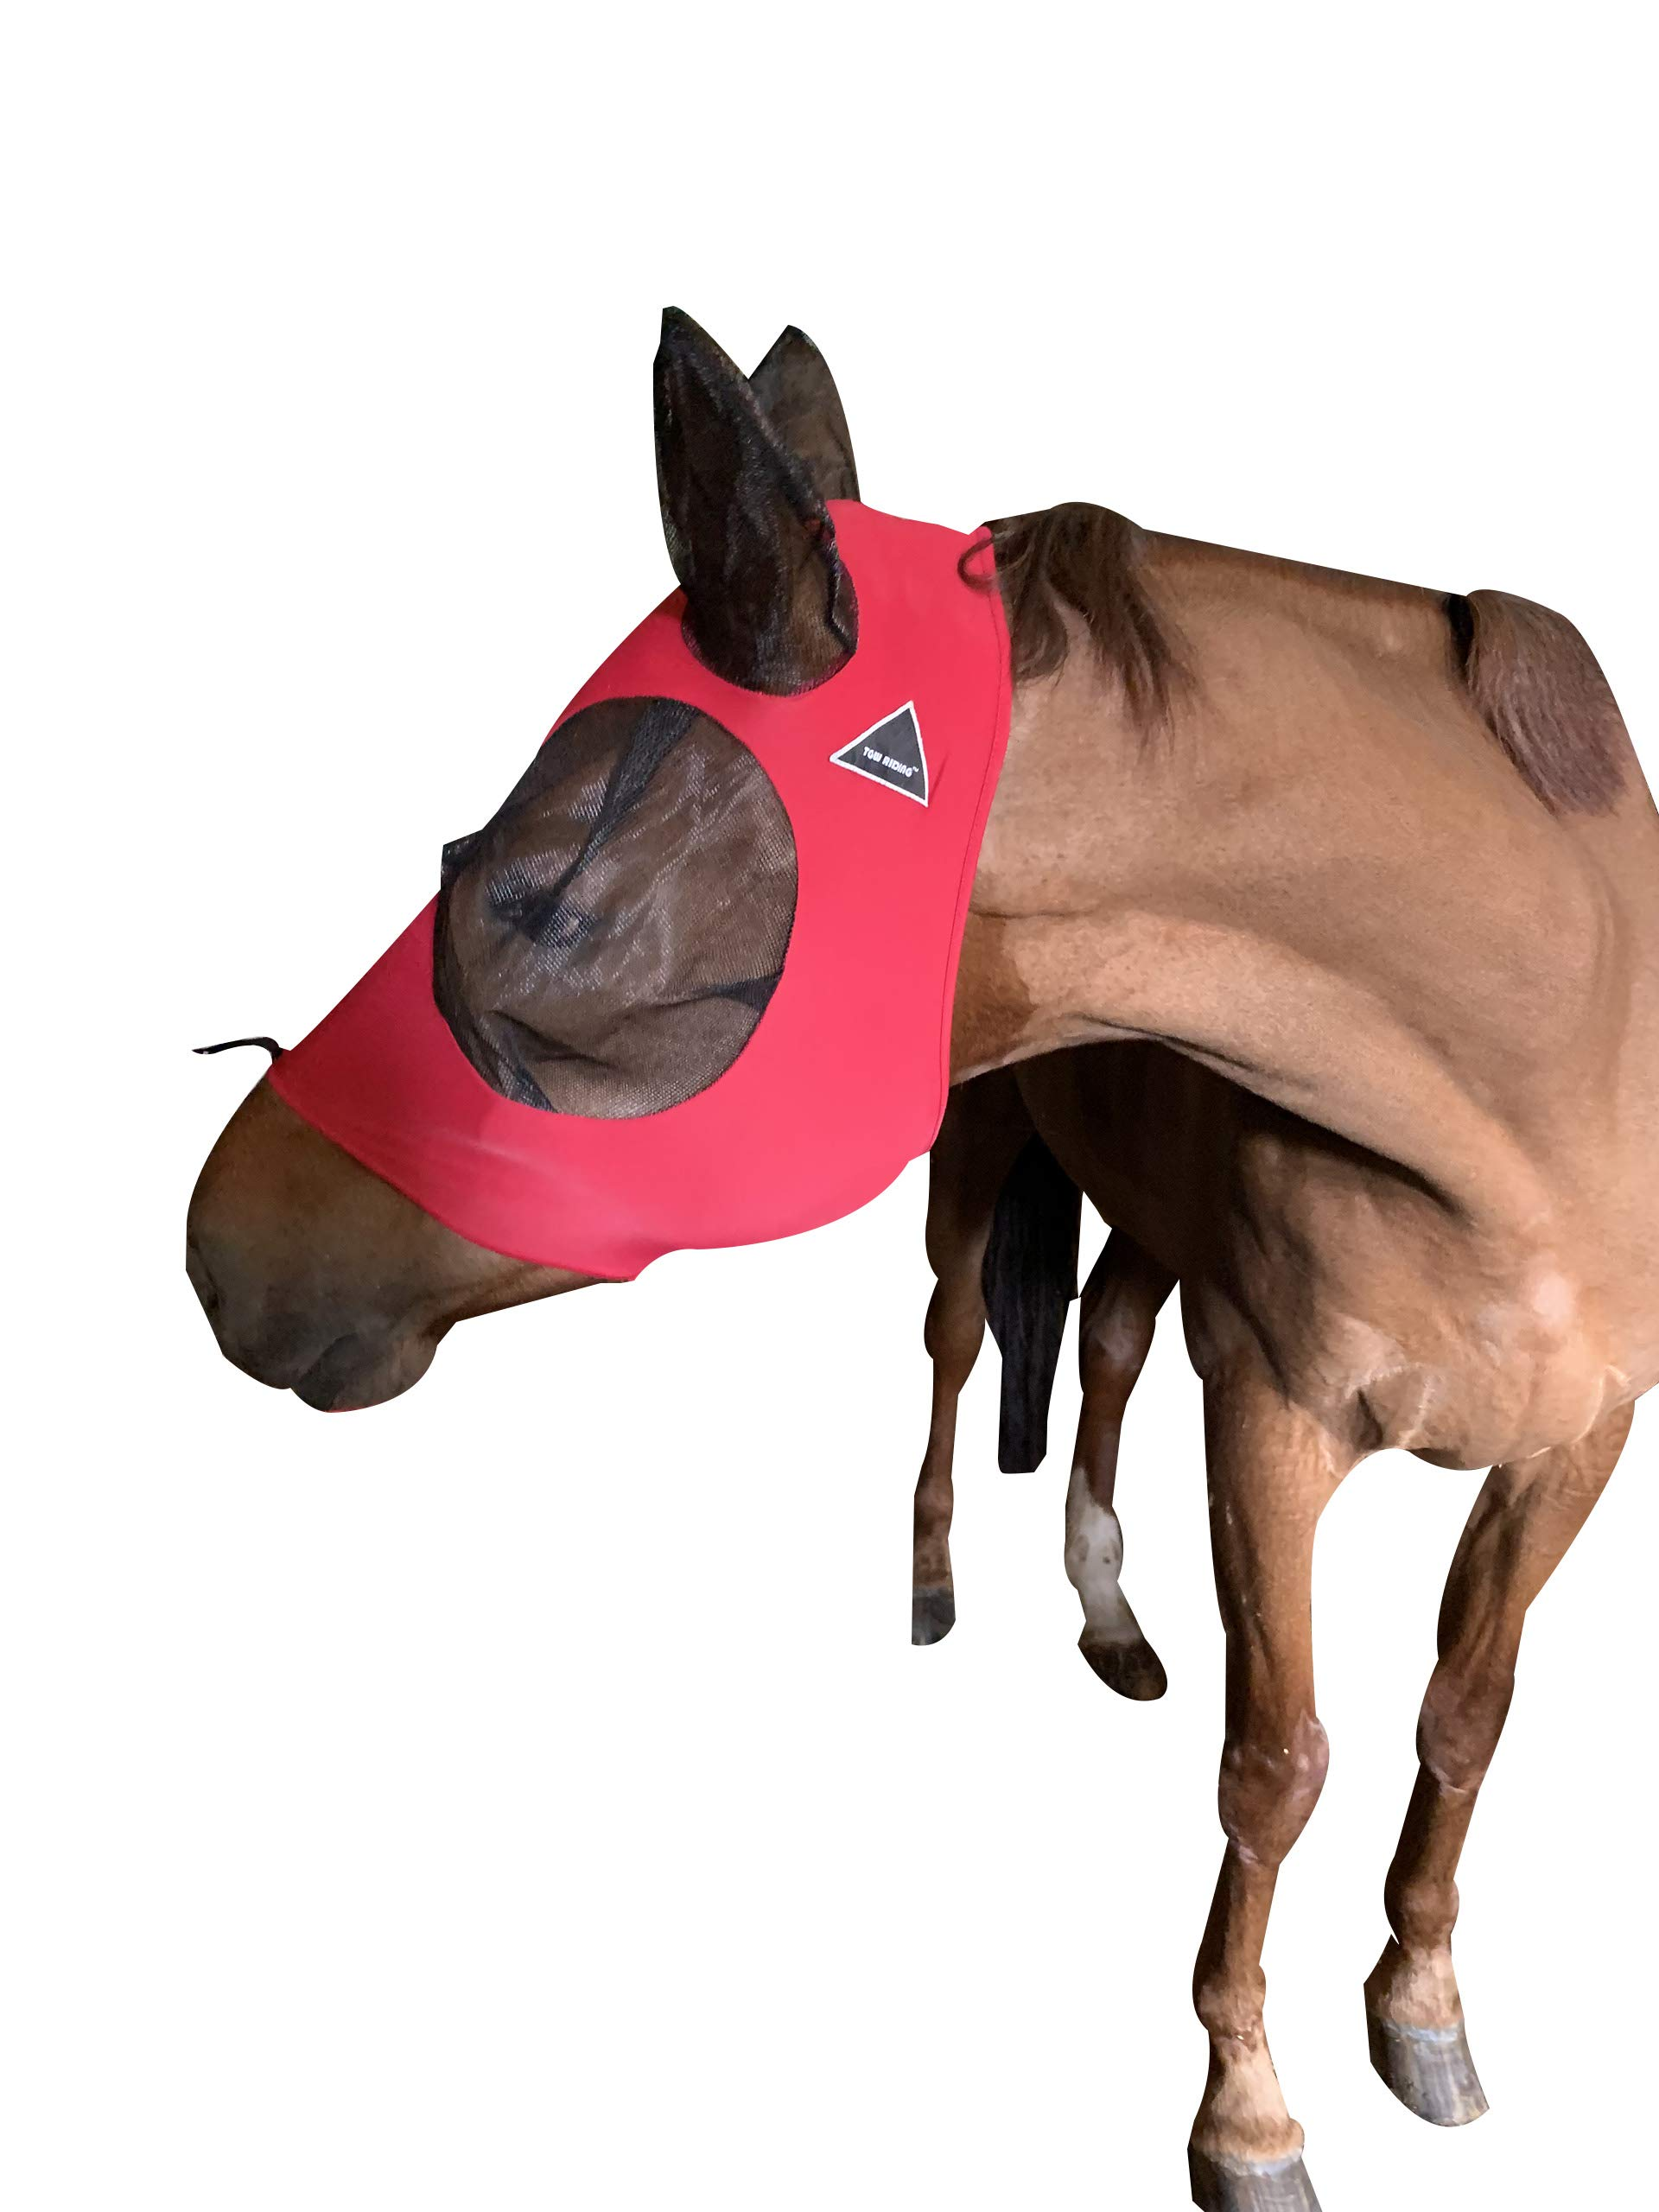 TGW RIDING Extra Comfort Lycra Grip Soft Mesh Horse Fly Mask with Ears (L, Bright Red) by TGW RIDING